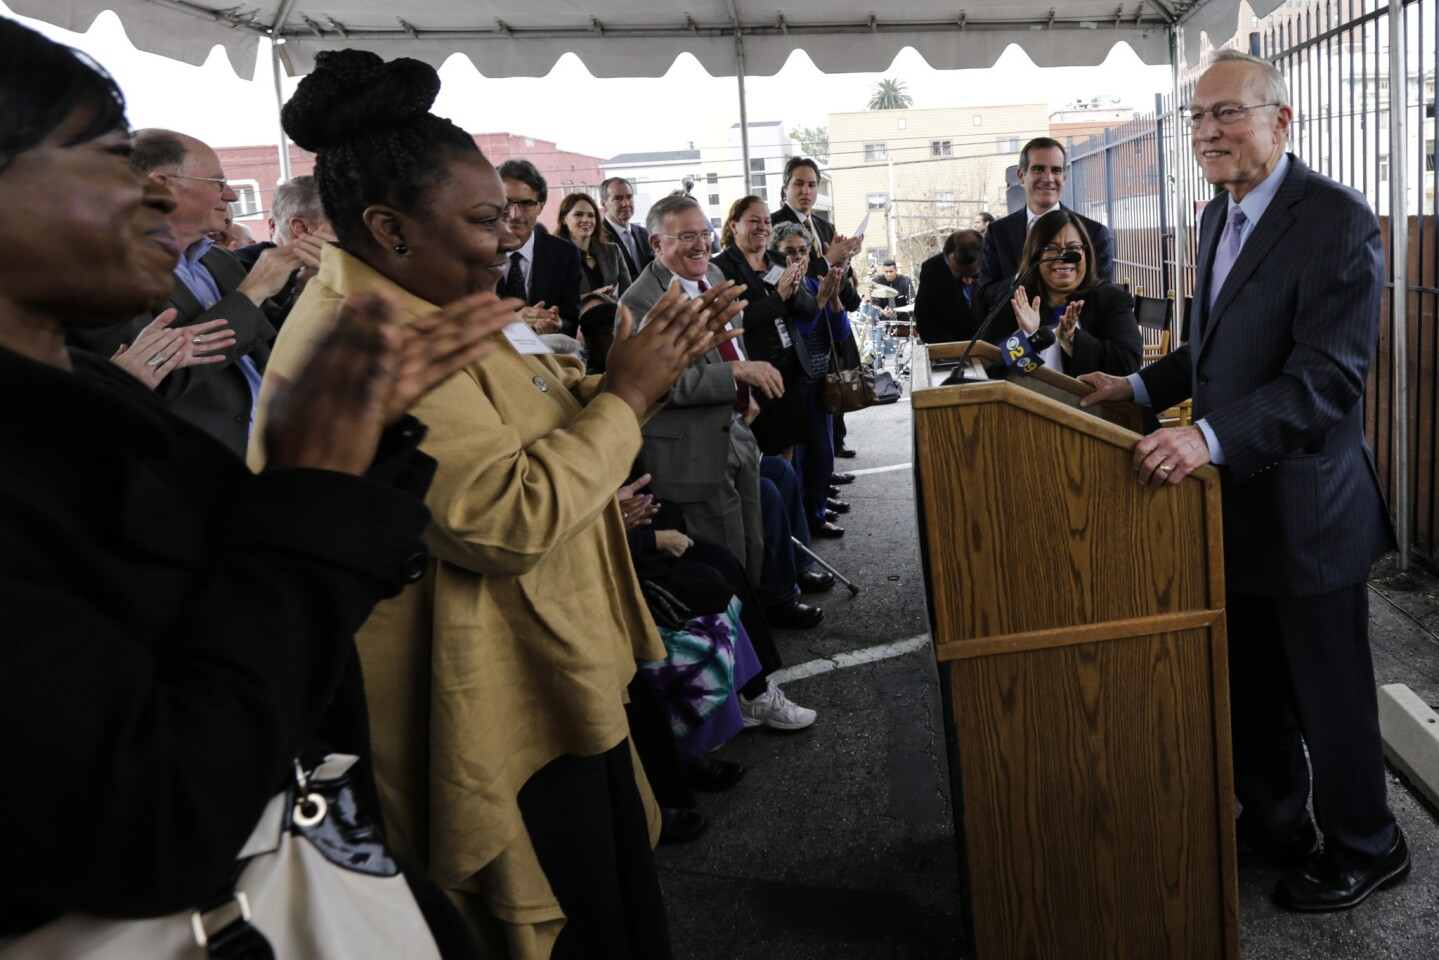 Ron Olson, right, gets a standing ovation at the groundbreaking ceremony of the Ron Olson Justice Center, named after him, at the corner of 8th Street and Union Avenue in Los Angeles.